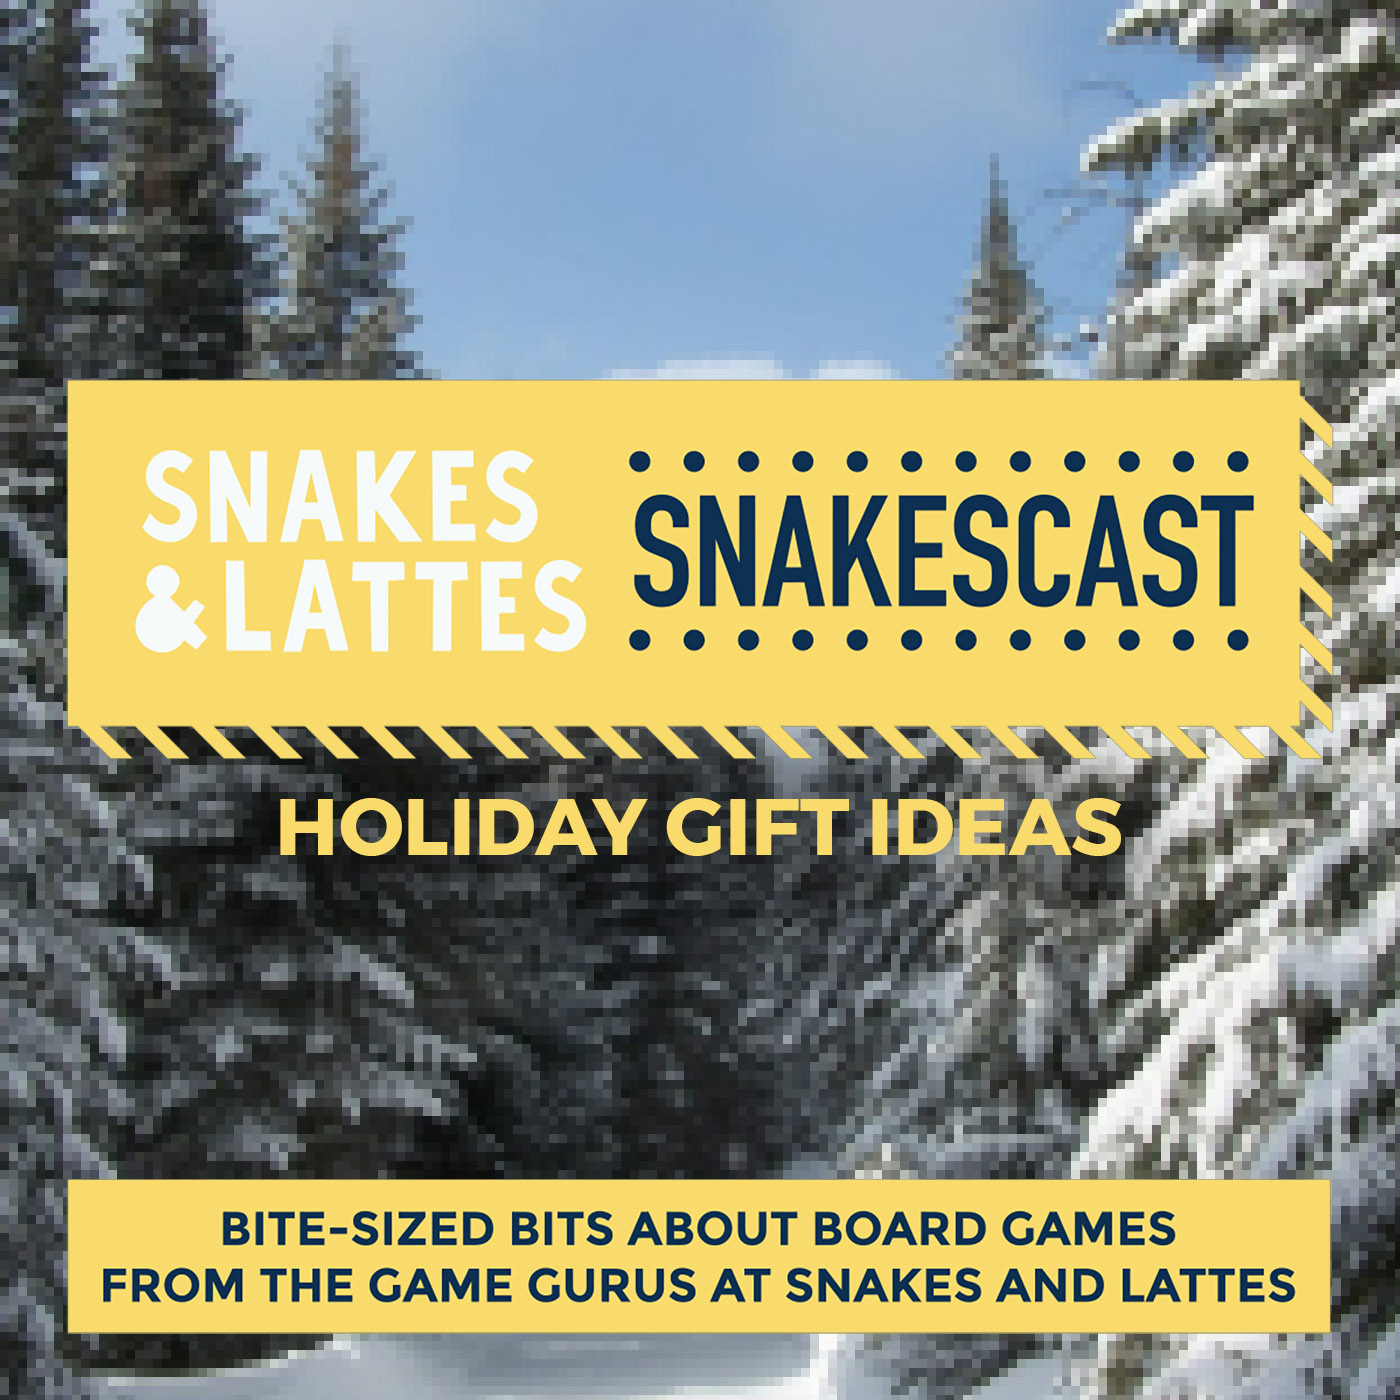 Holiday Gift Ideas, Part 1 - Tips for the heavier side of gaming